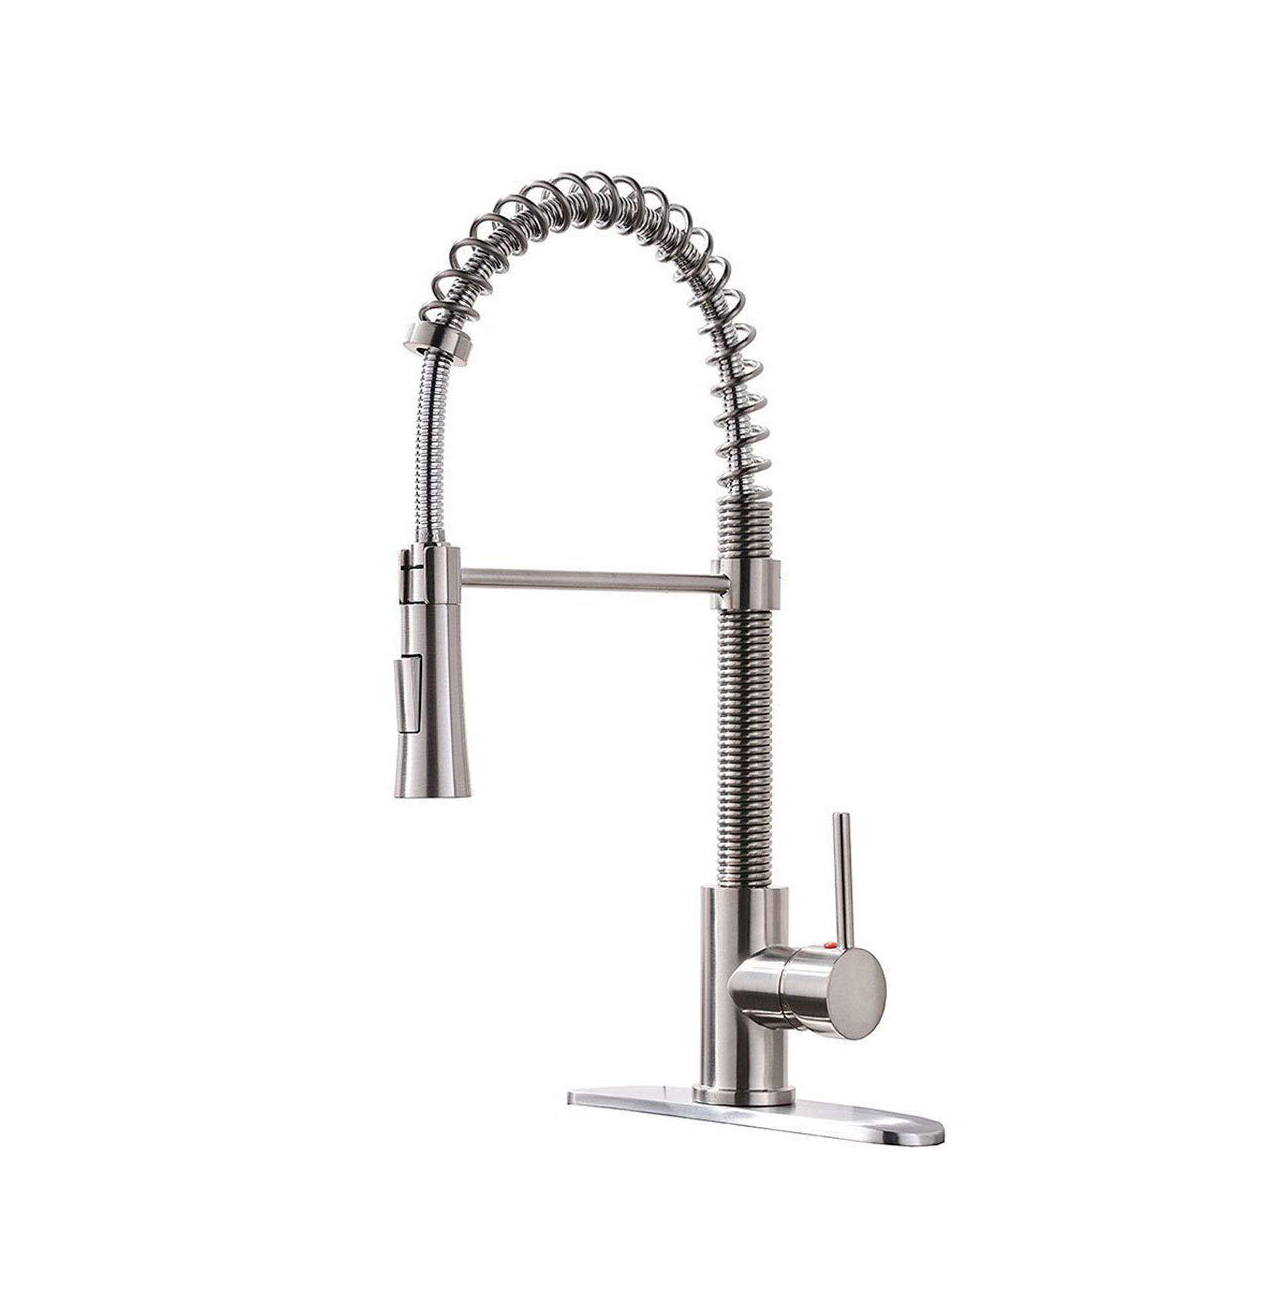 Lead Free Stainless Steel Single Lever Handle Pull Down Sprayer Brushed Nickel Kitchen Sink Faucet With Deck Plate Buy Pull Out Kitchen Faucet Brushed Nickel Kitchen Faucet Stainless Steel Kitchen Sink Faucet Product